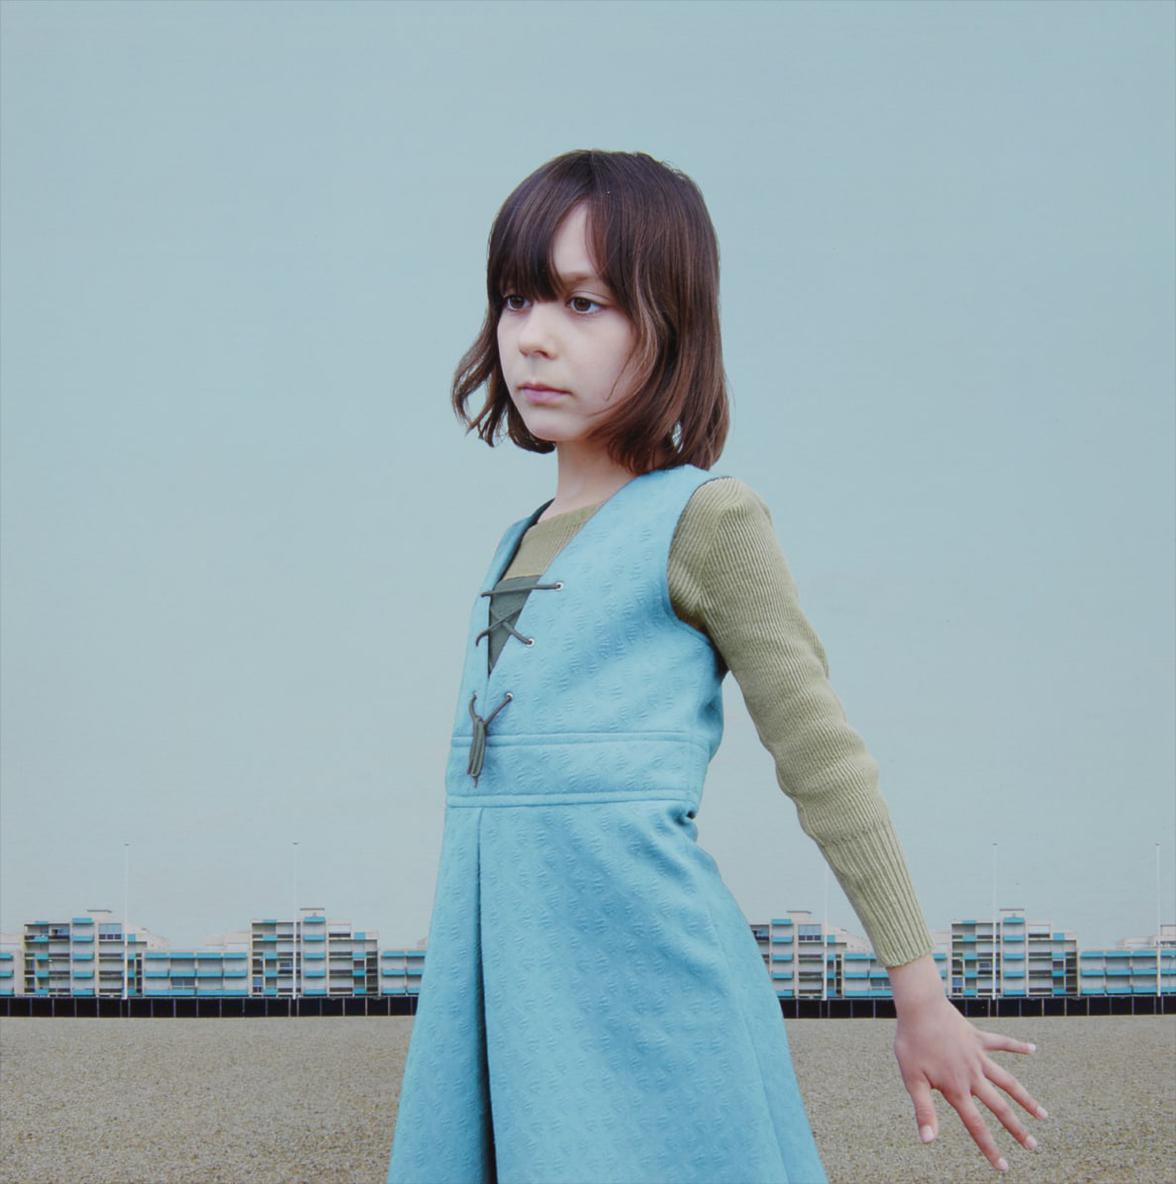 Loretta Lux-The Blue Dress-2001